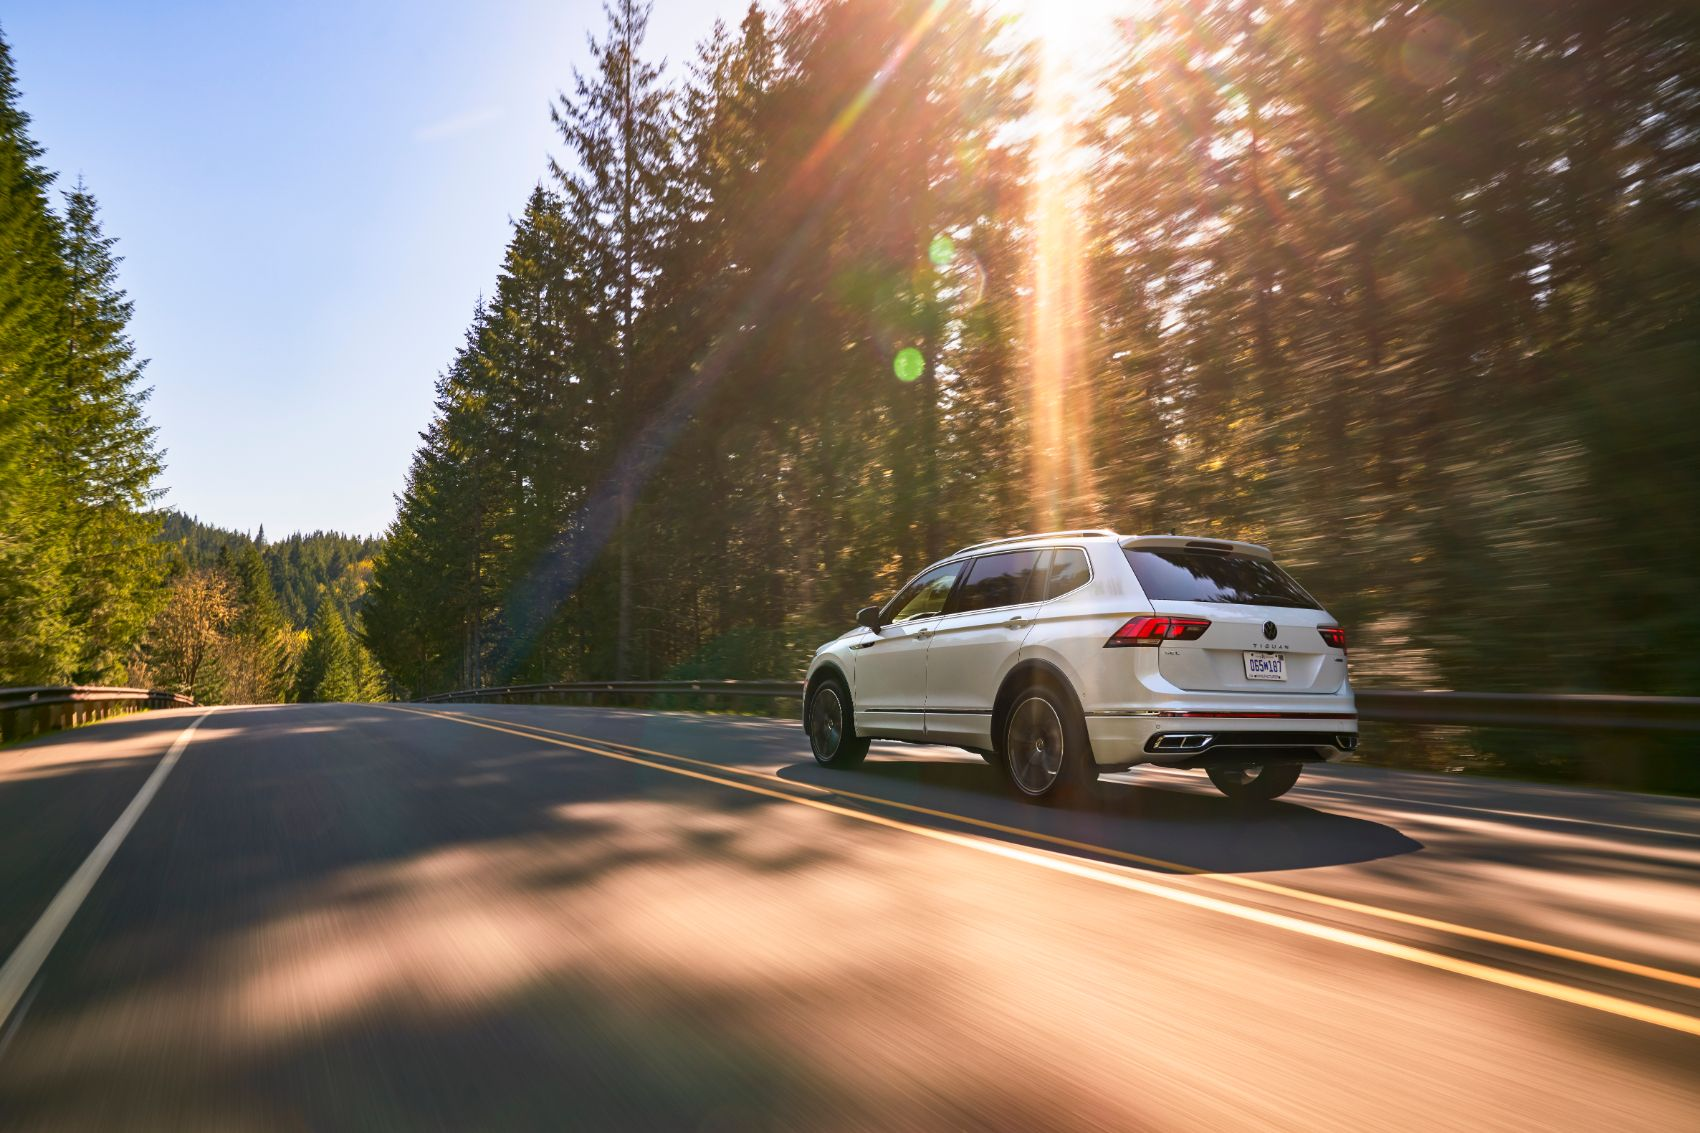 2022 VW Tiguan: Refreshed Styling & New Tech Updates for VW's Top-Selling Crossover